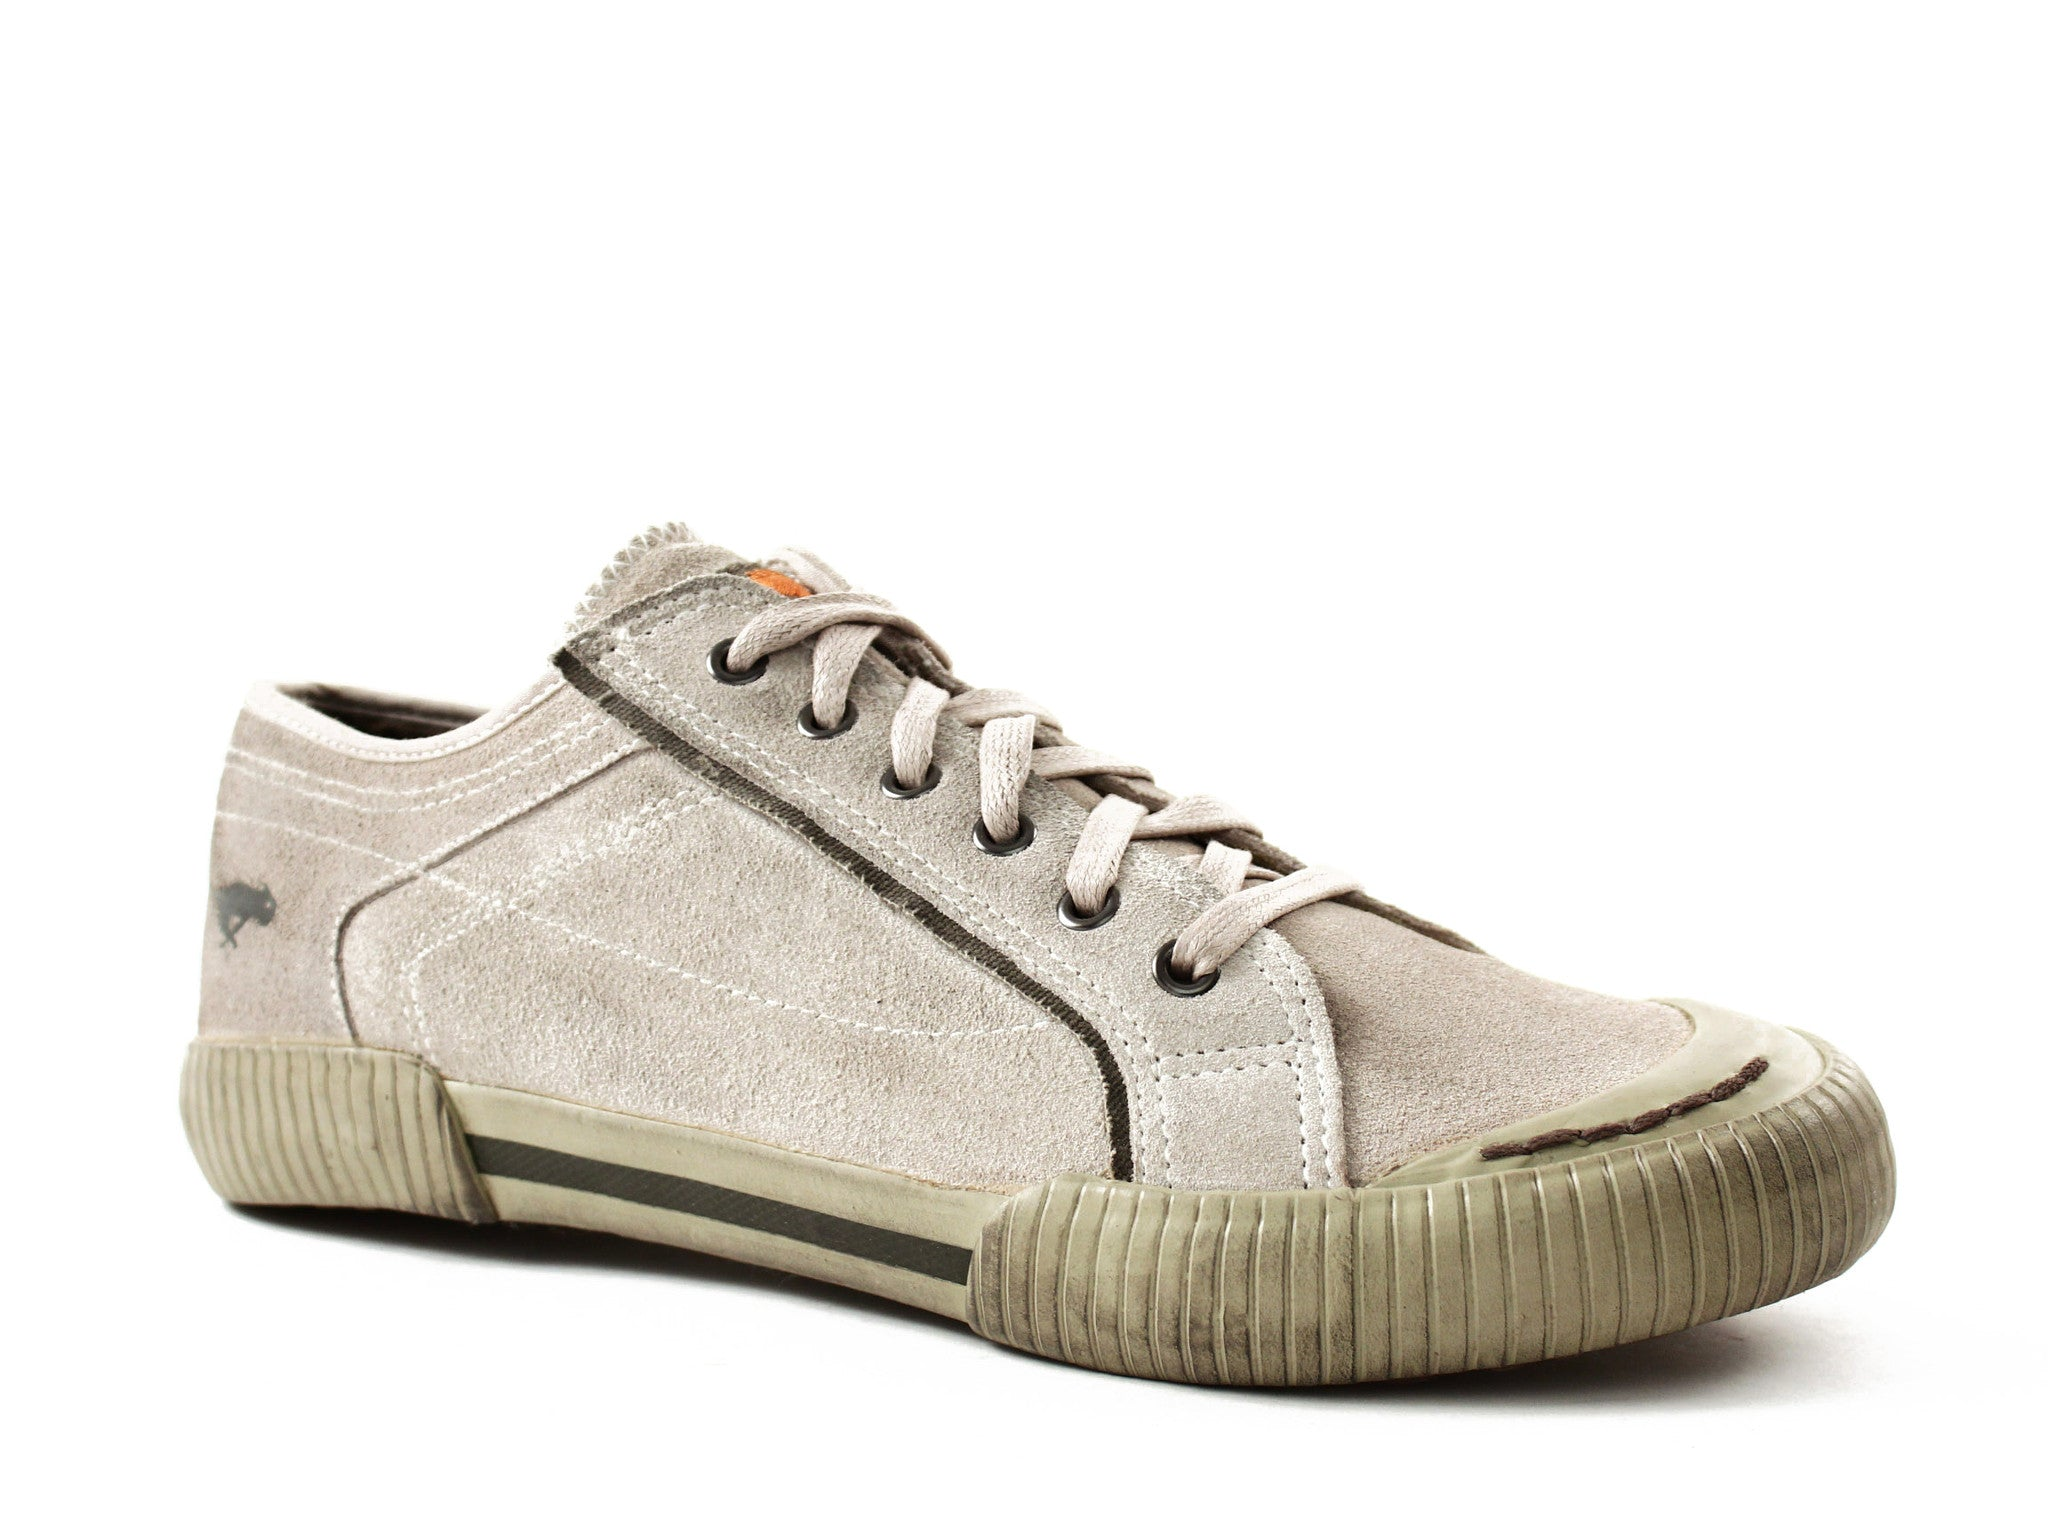 73ff40449d Rocket Dog Dash Men s Casual Sneakers Shoes Dirty White – ShoeVariety.com